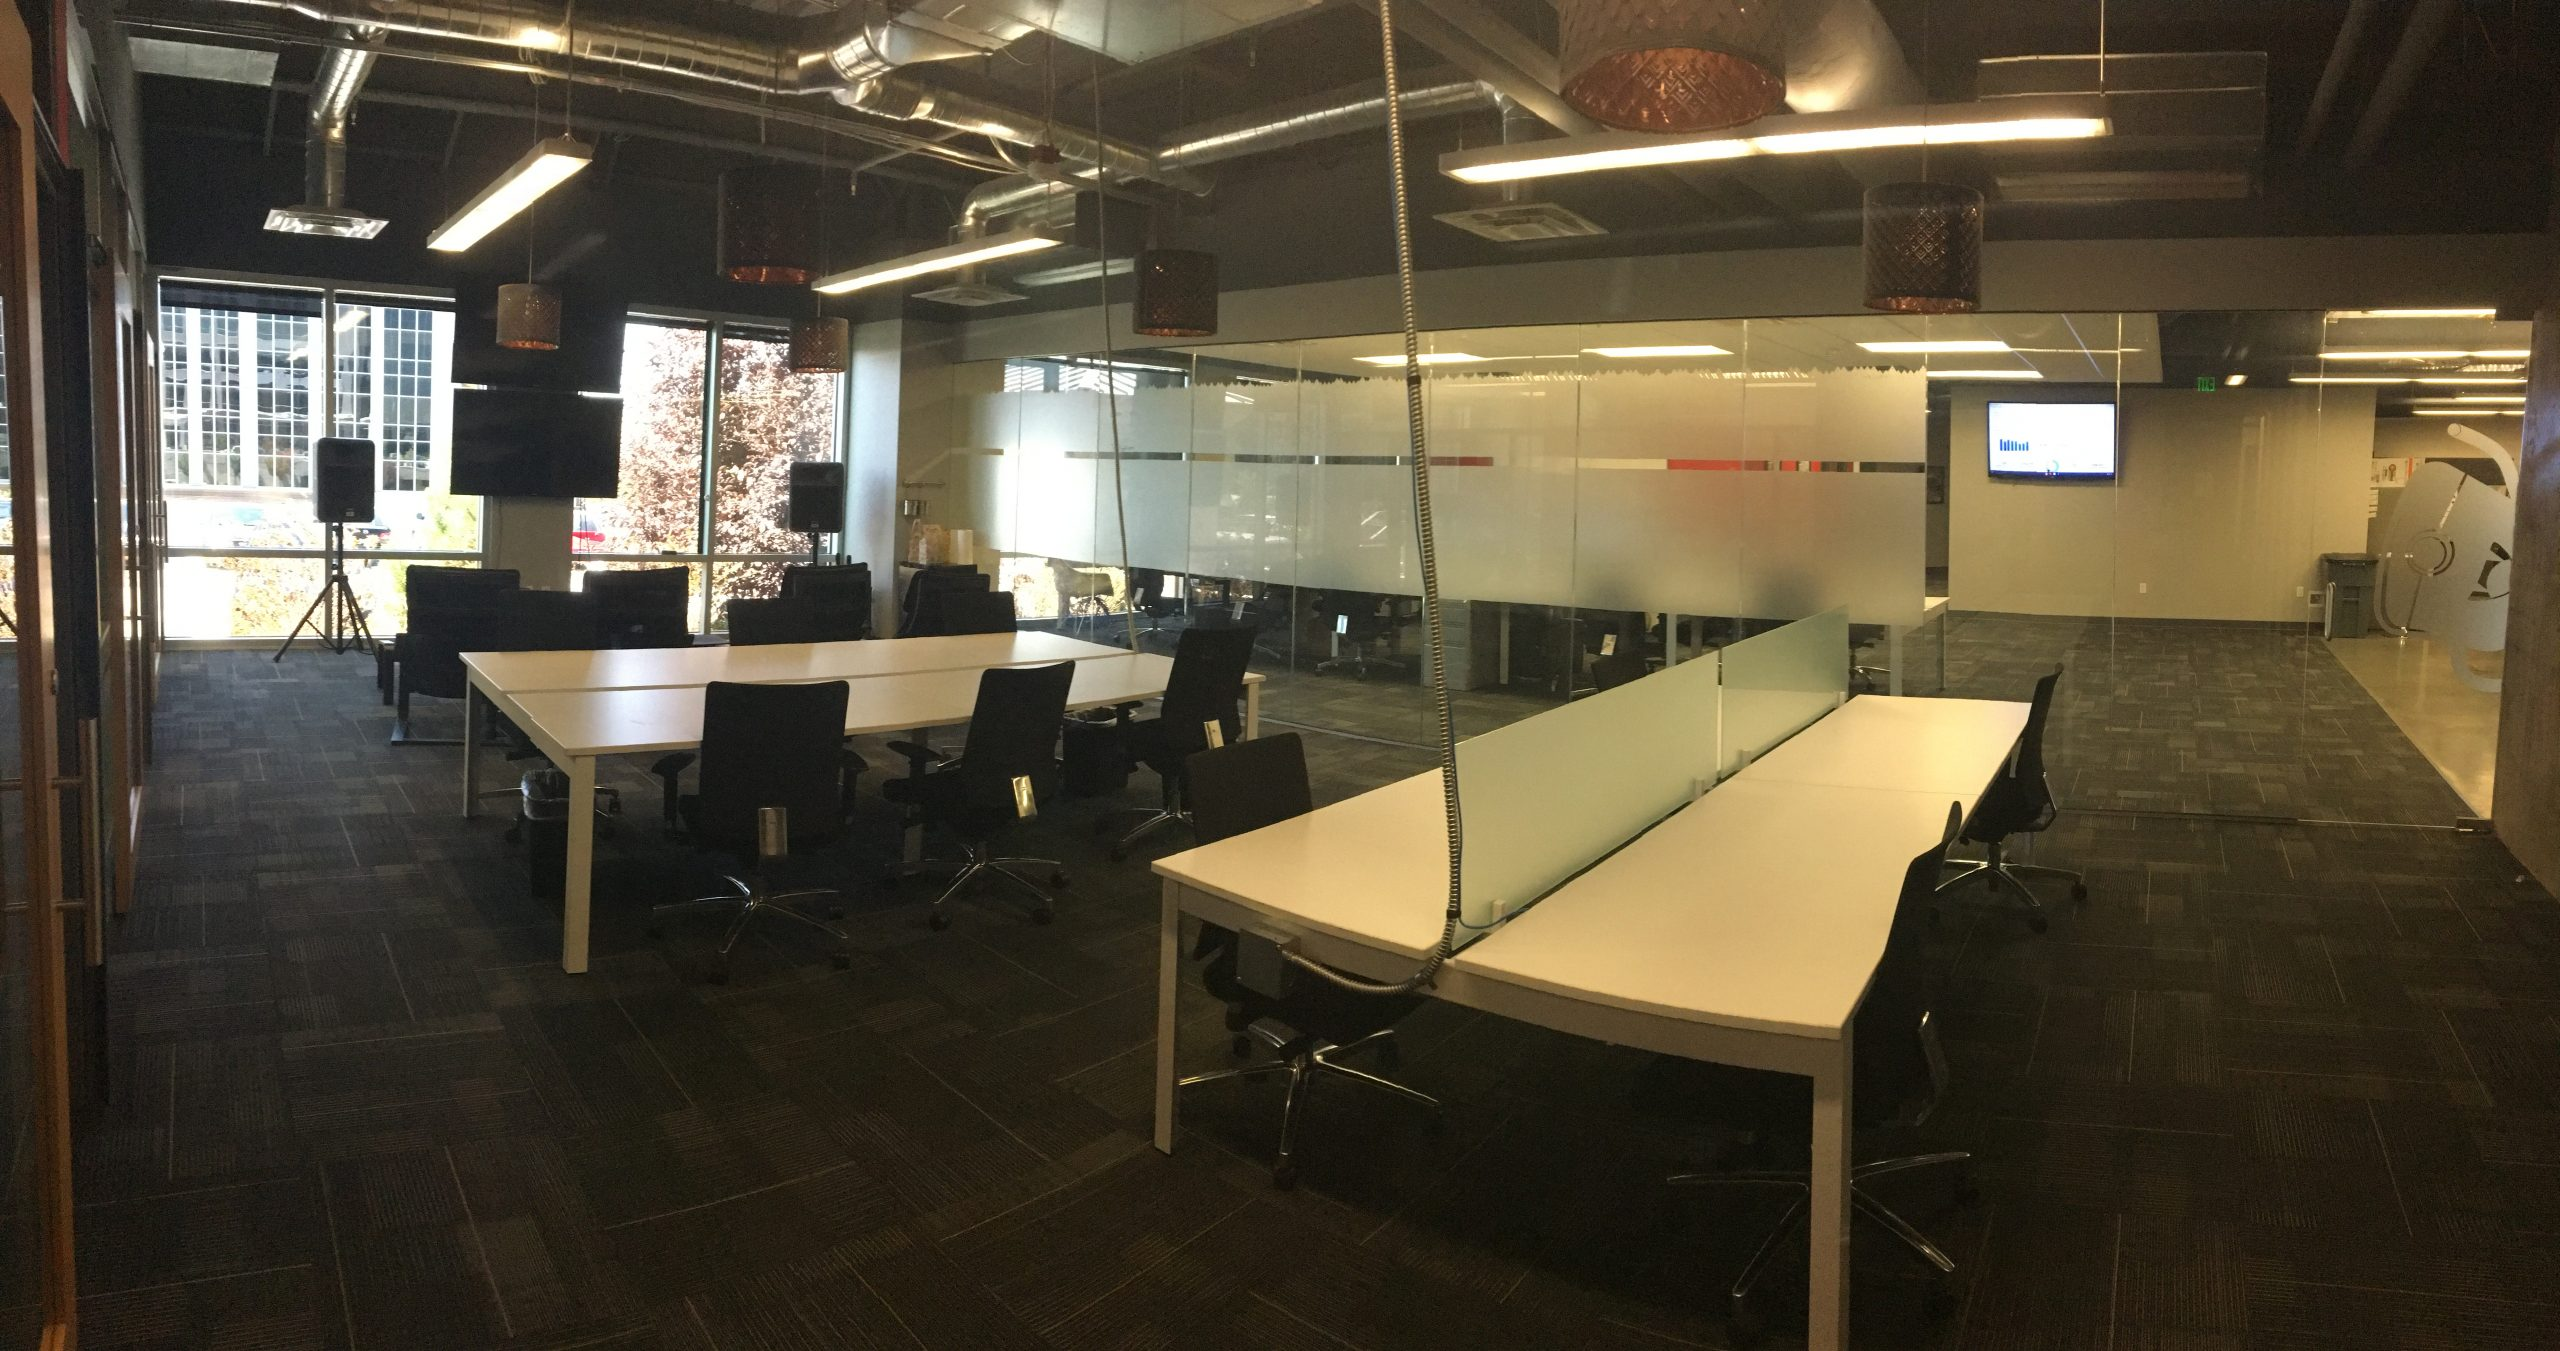 Search for office space utah